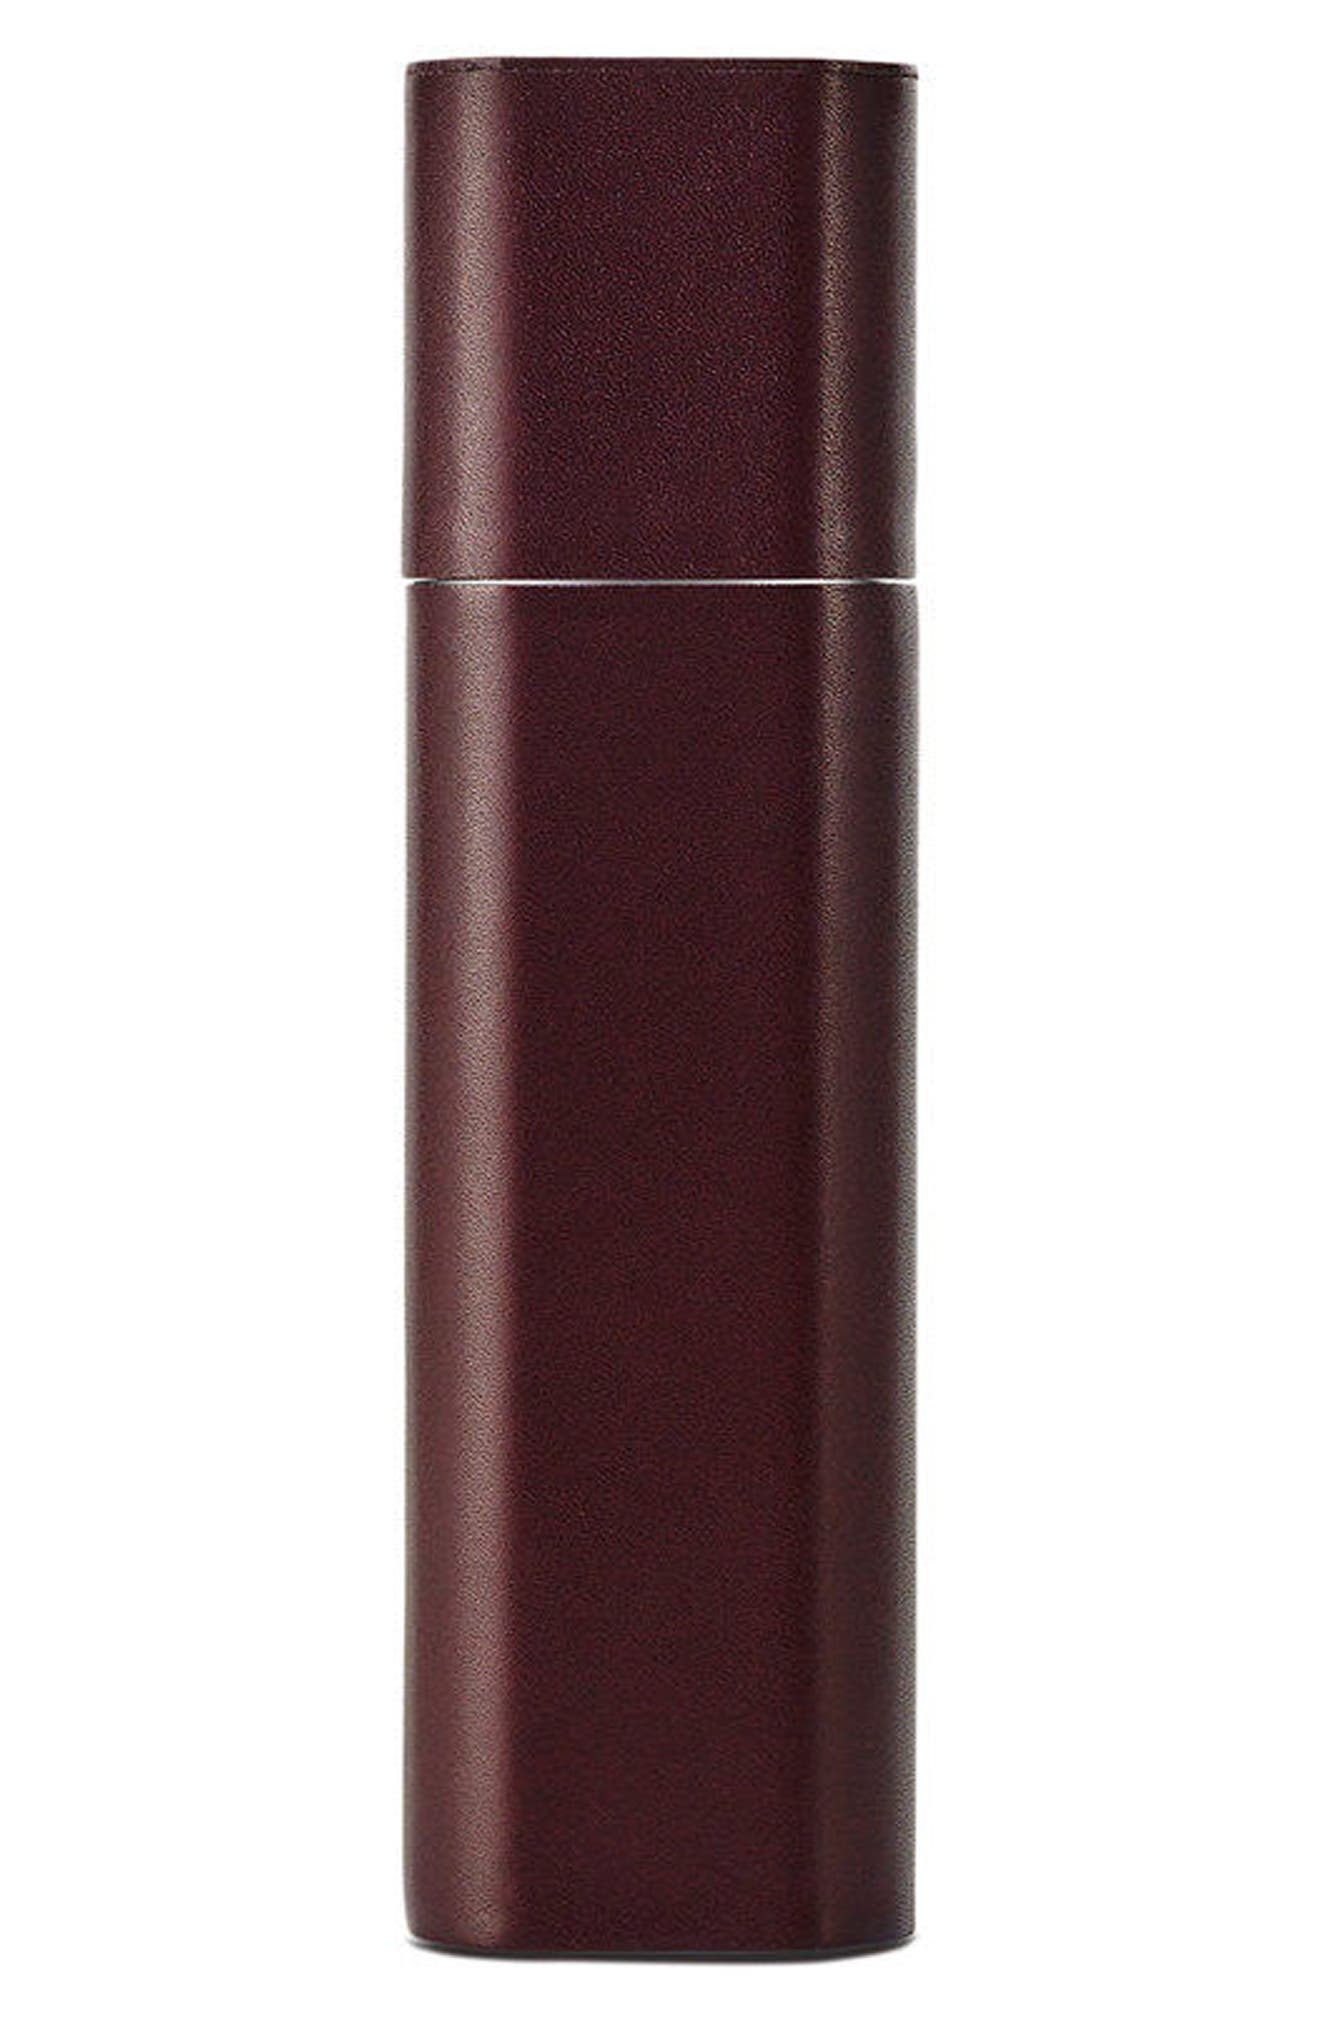 Alternate Image 1 Selected - BYREDO Nécessaire de Voyage Leather Travel Case in Burgundy